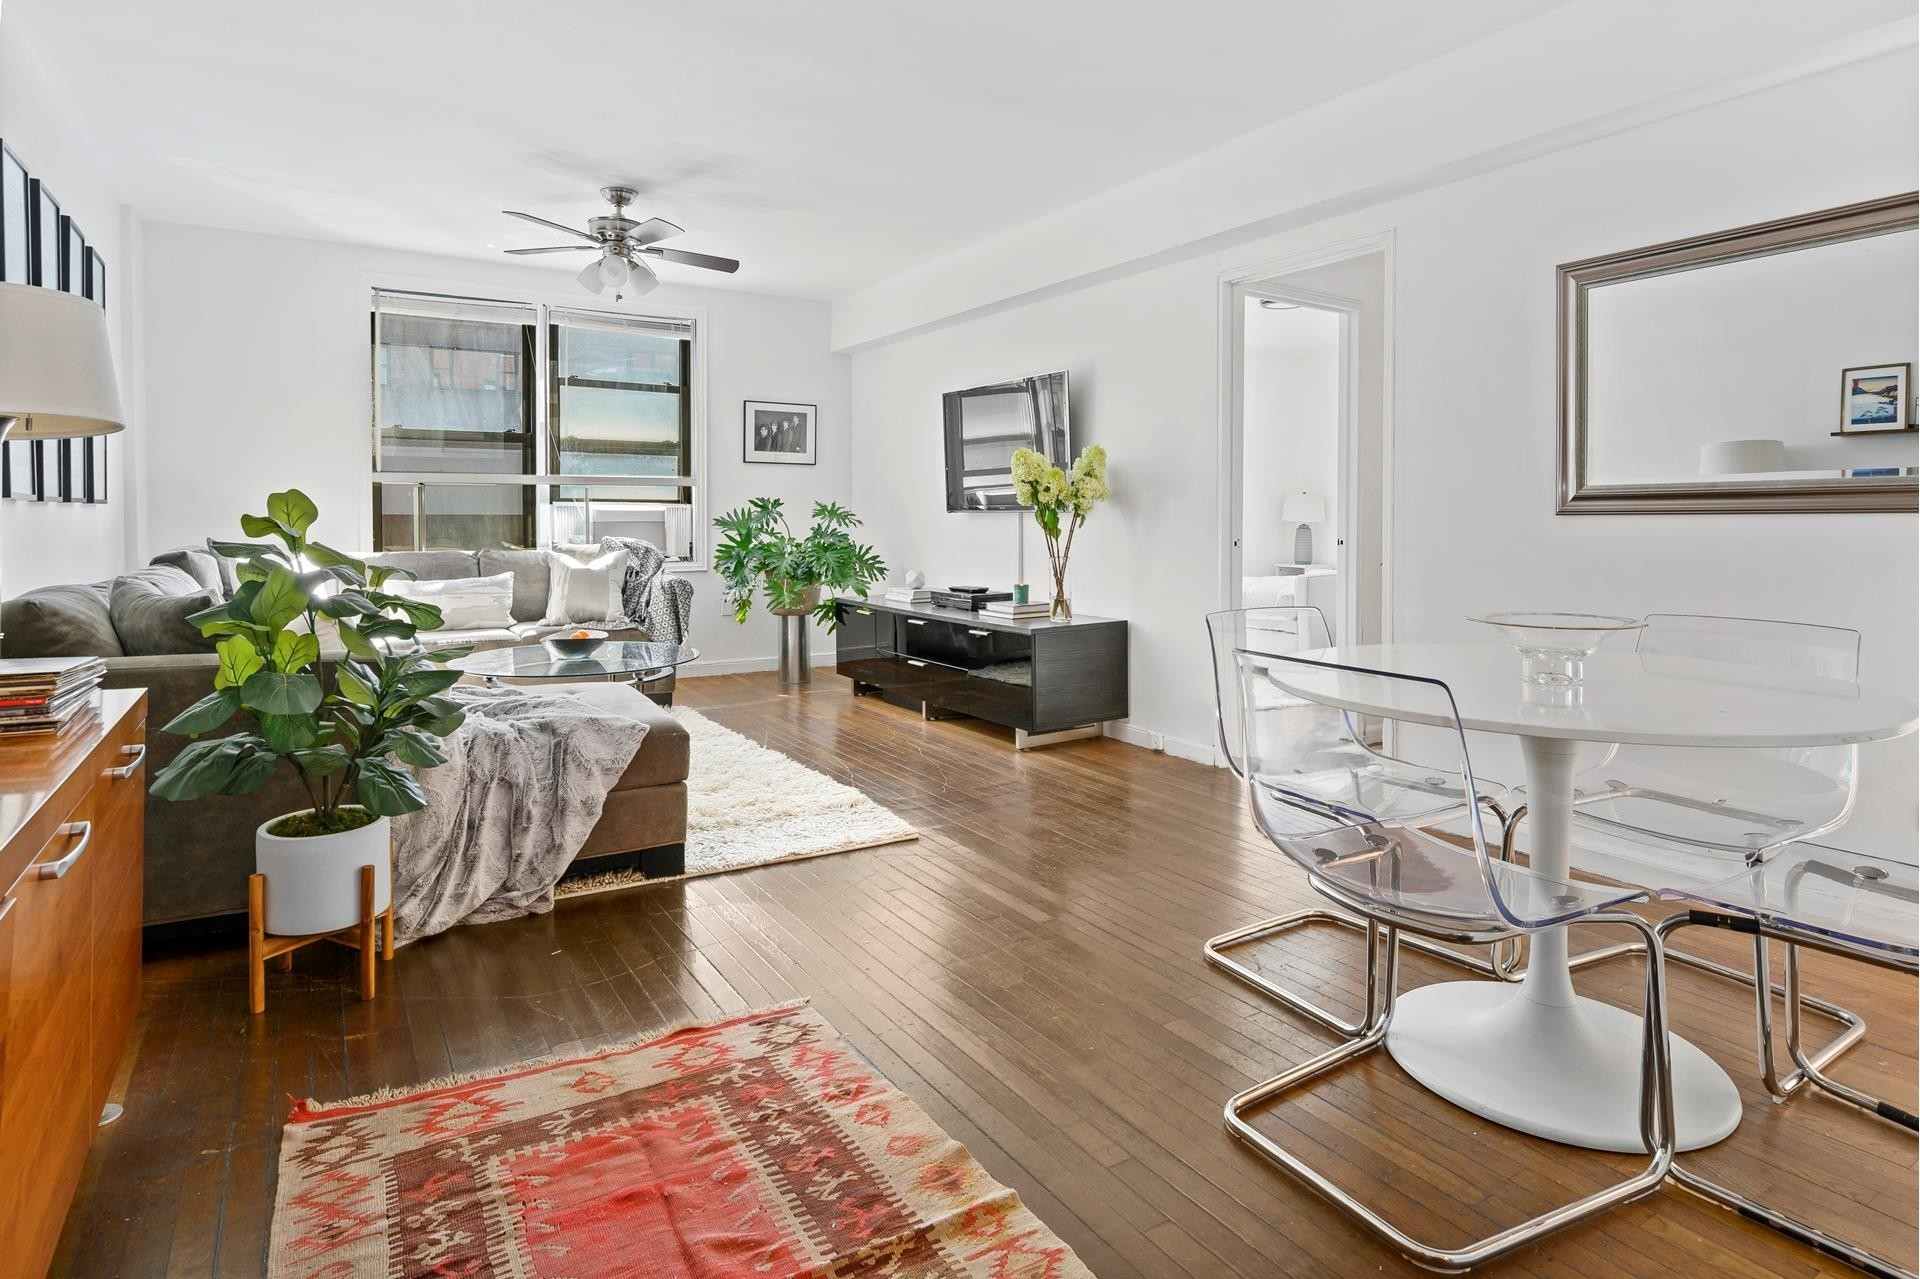 Property at 60 East 9th St, 311 Greenwich Village, New York, NY 10003